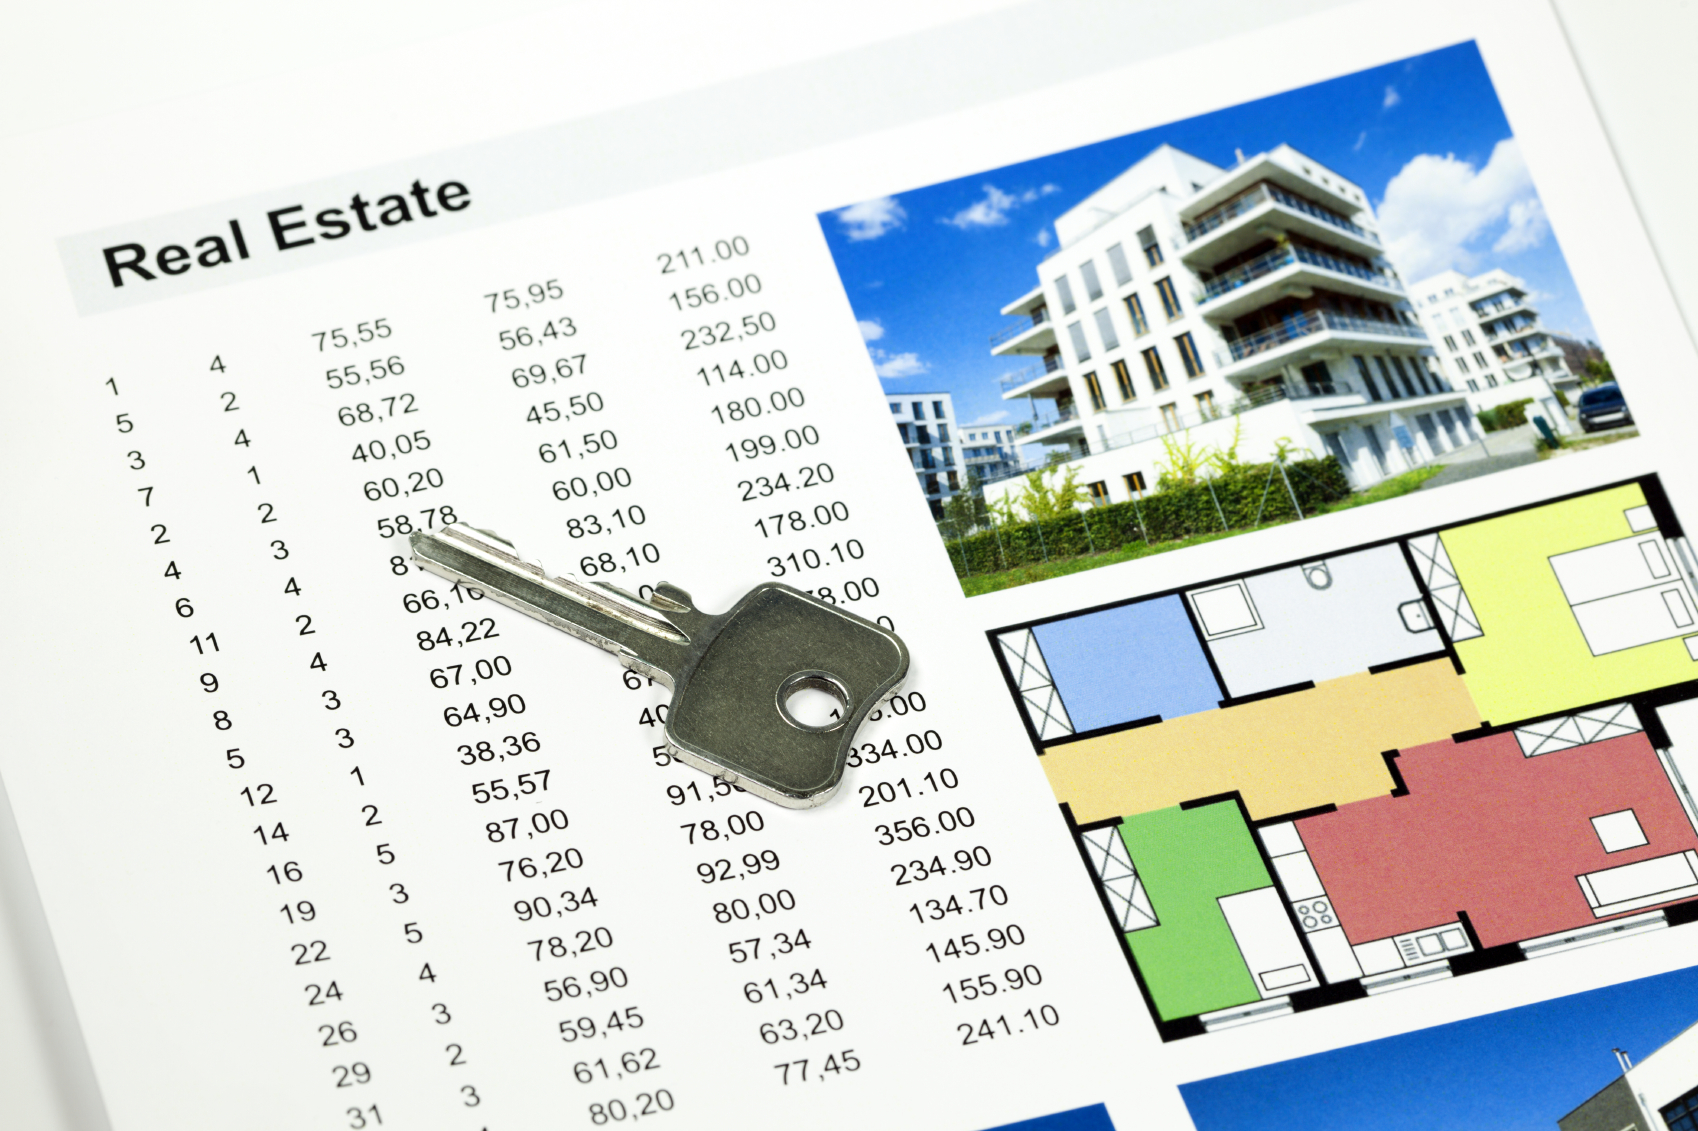 business property and real estate Get the wall street journal's latest news on real estate, homebuying, houses for sale, luxury homes, mortgage loans and interest rates.